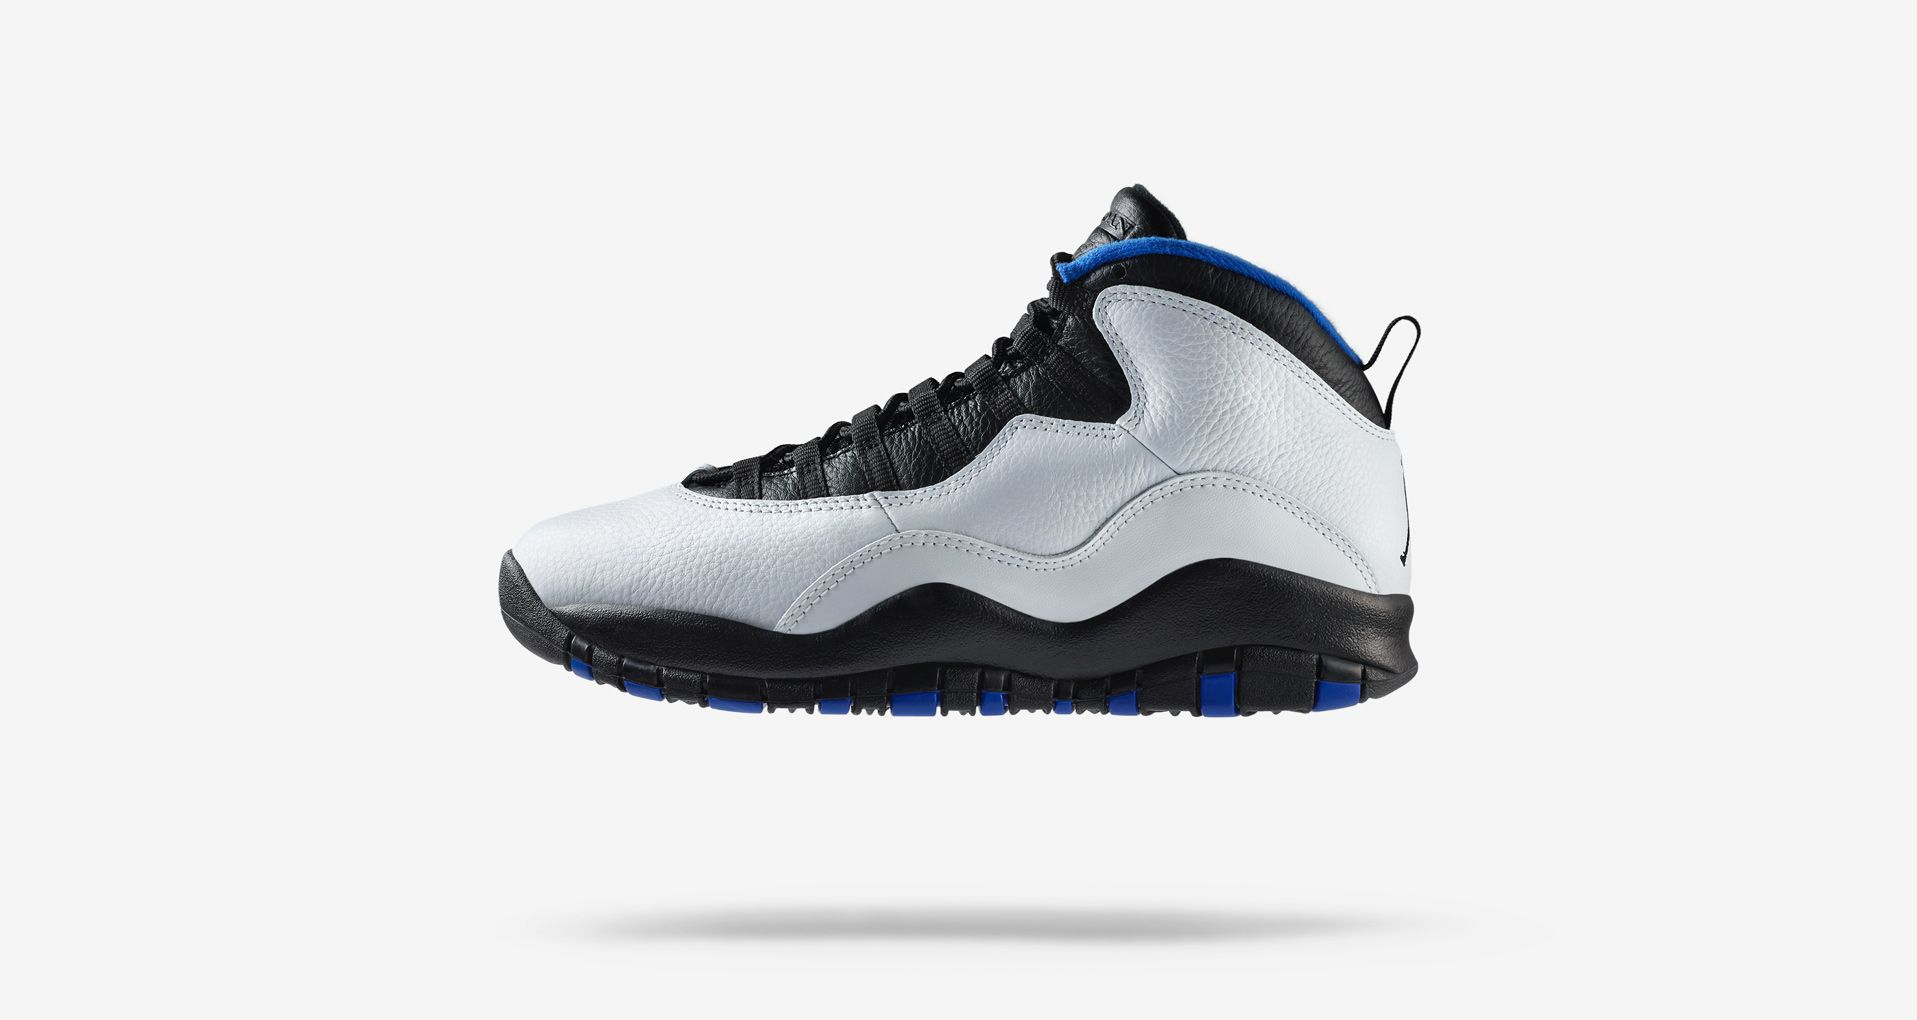 low priced d4720 ec07f Air Jordan 10 Retro Orlando  White   Royal   Black  ...